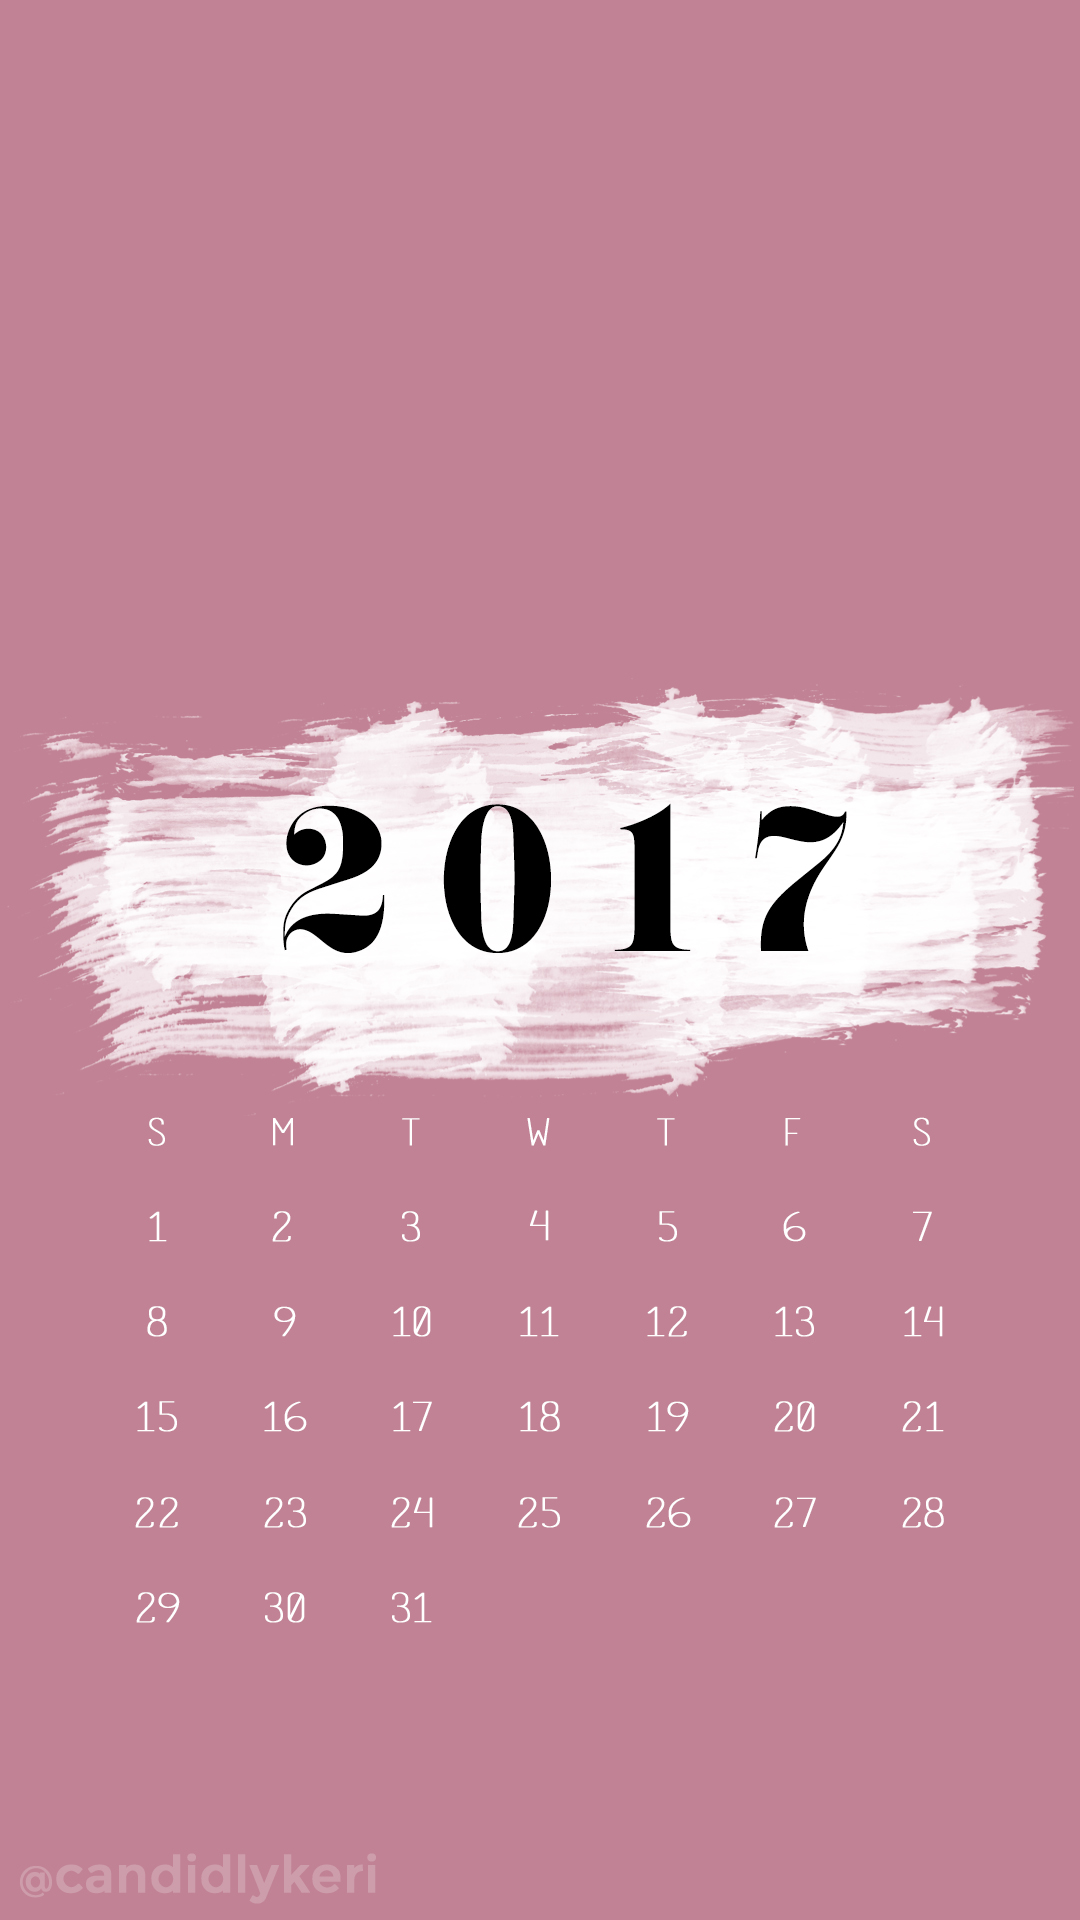 Calendar Wallpaper Iphone : Iphone wallpaper the dress decoded